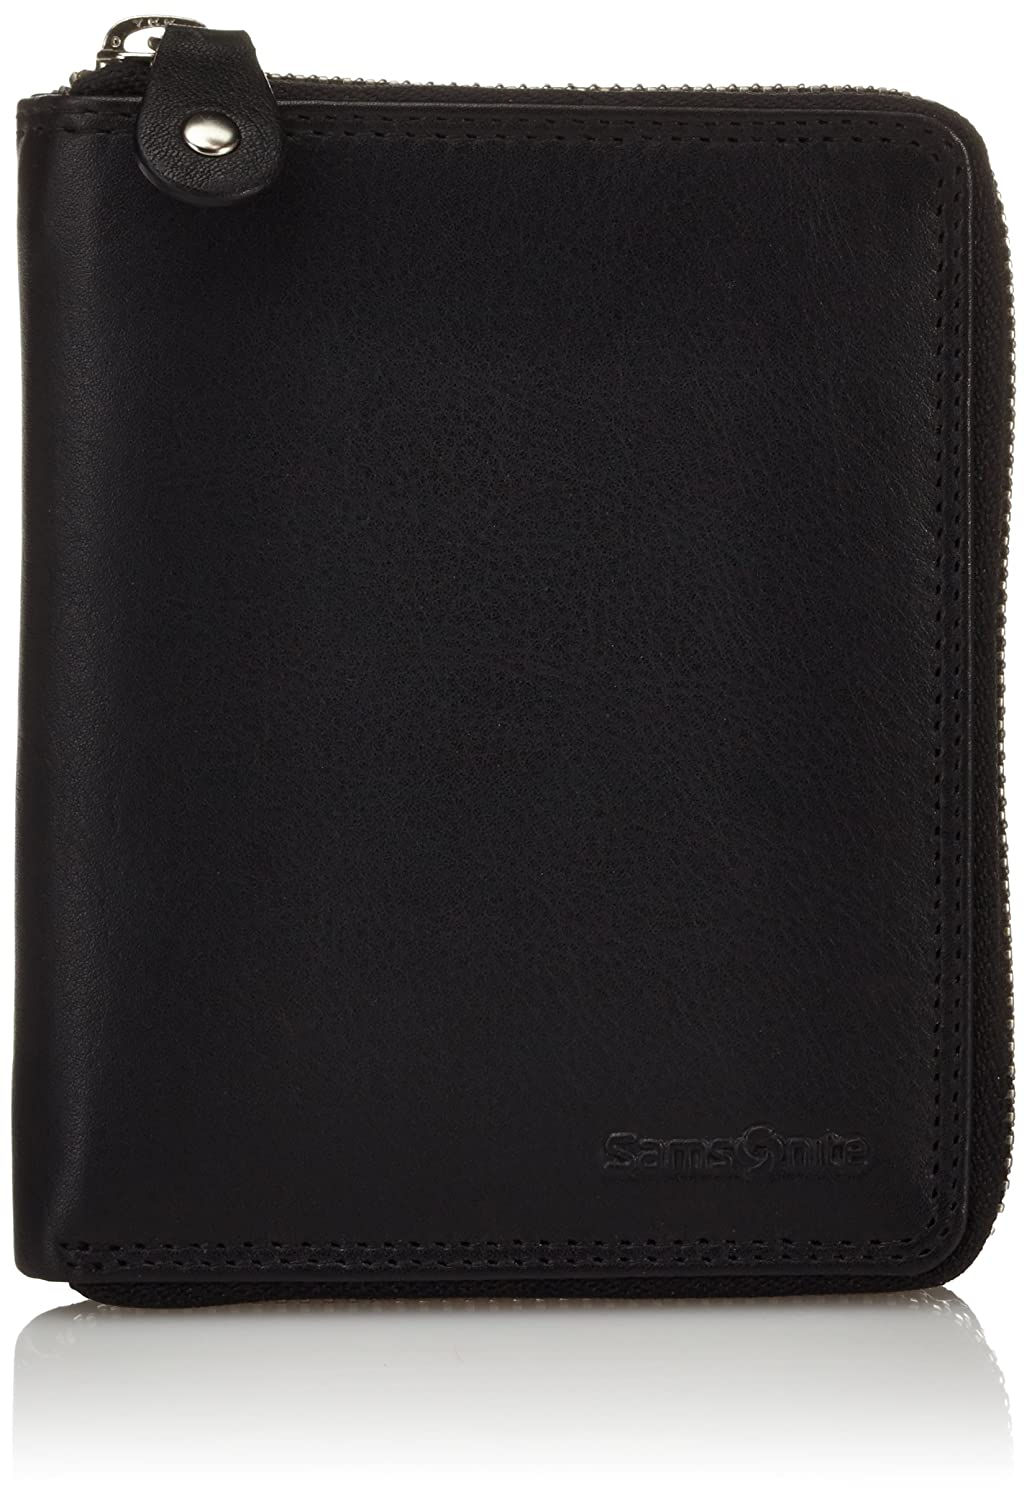 Samsonite Attack SLG Wallet Zip Around M - Monedero de Cuero Hombre